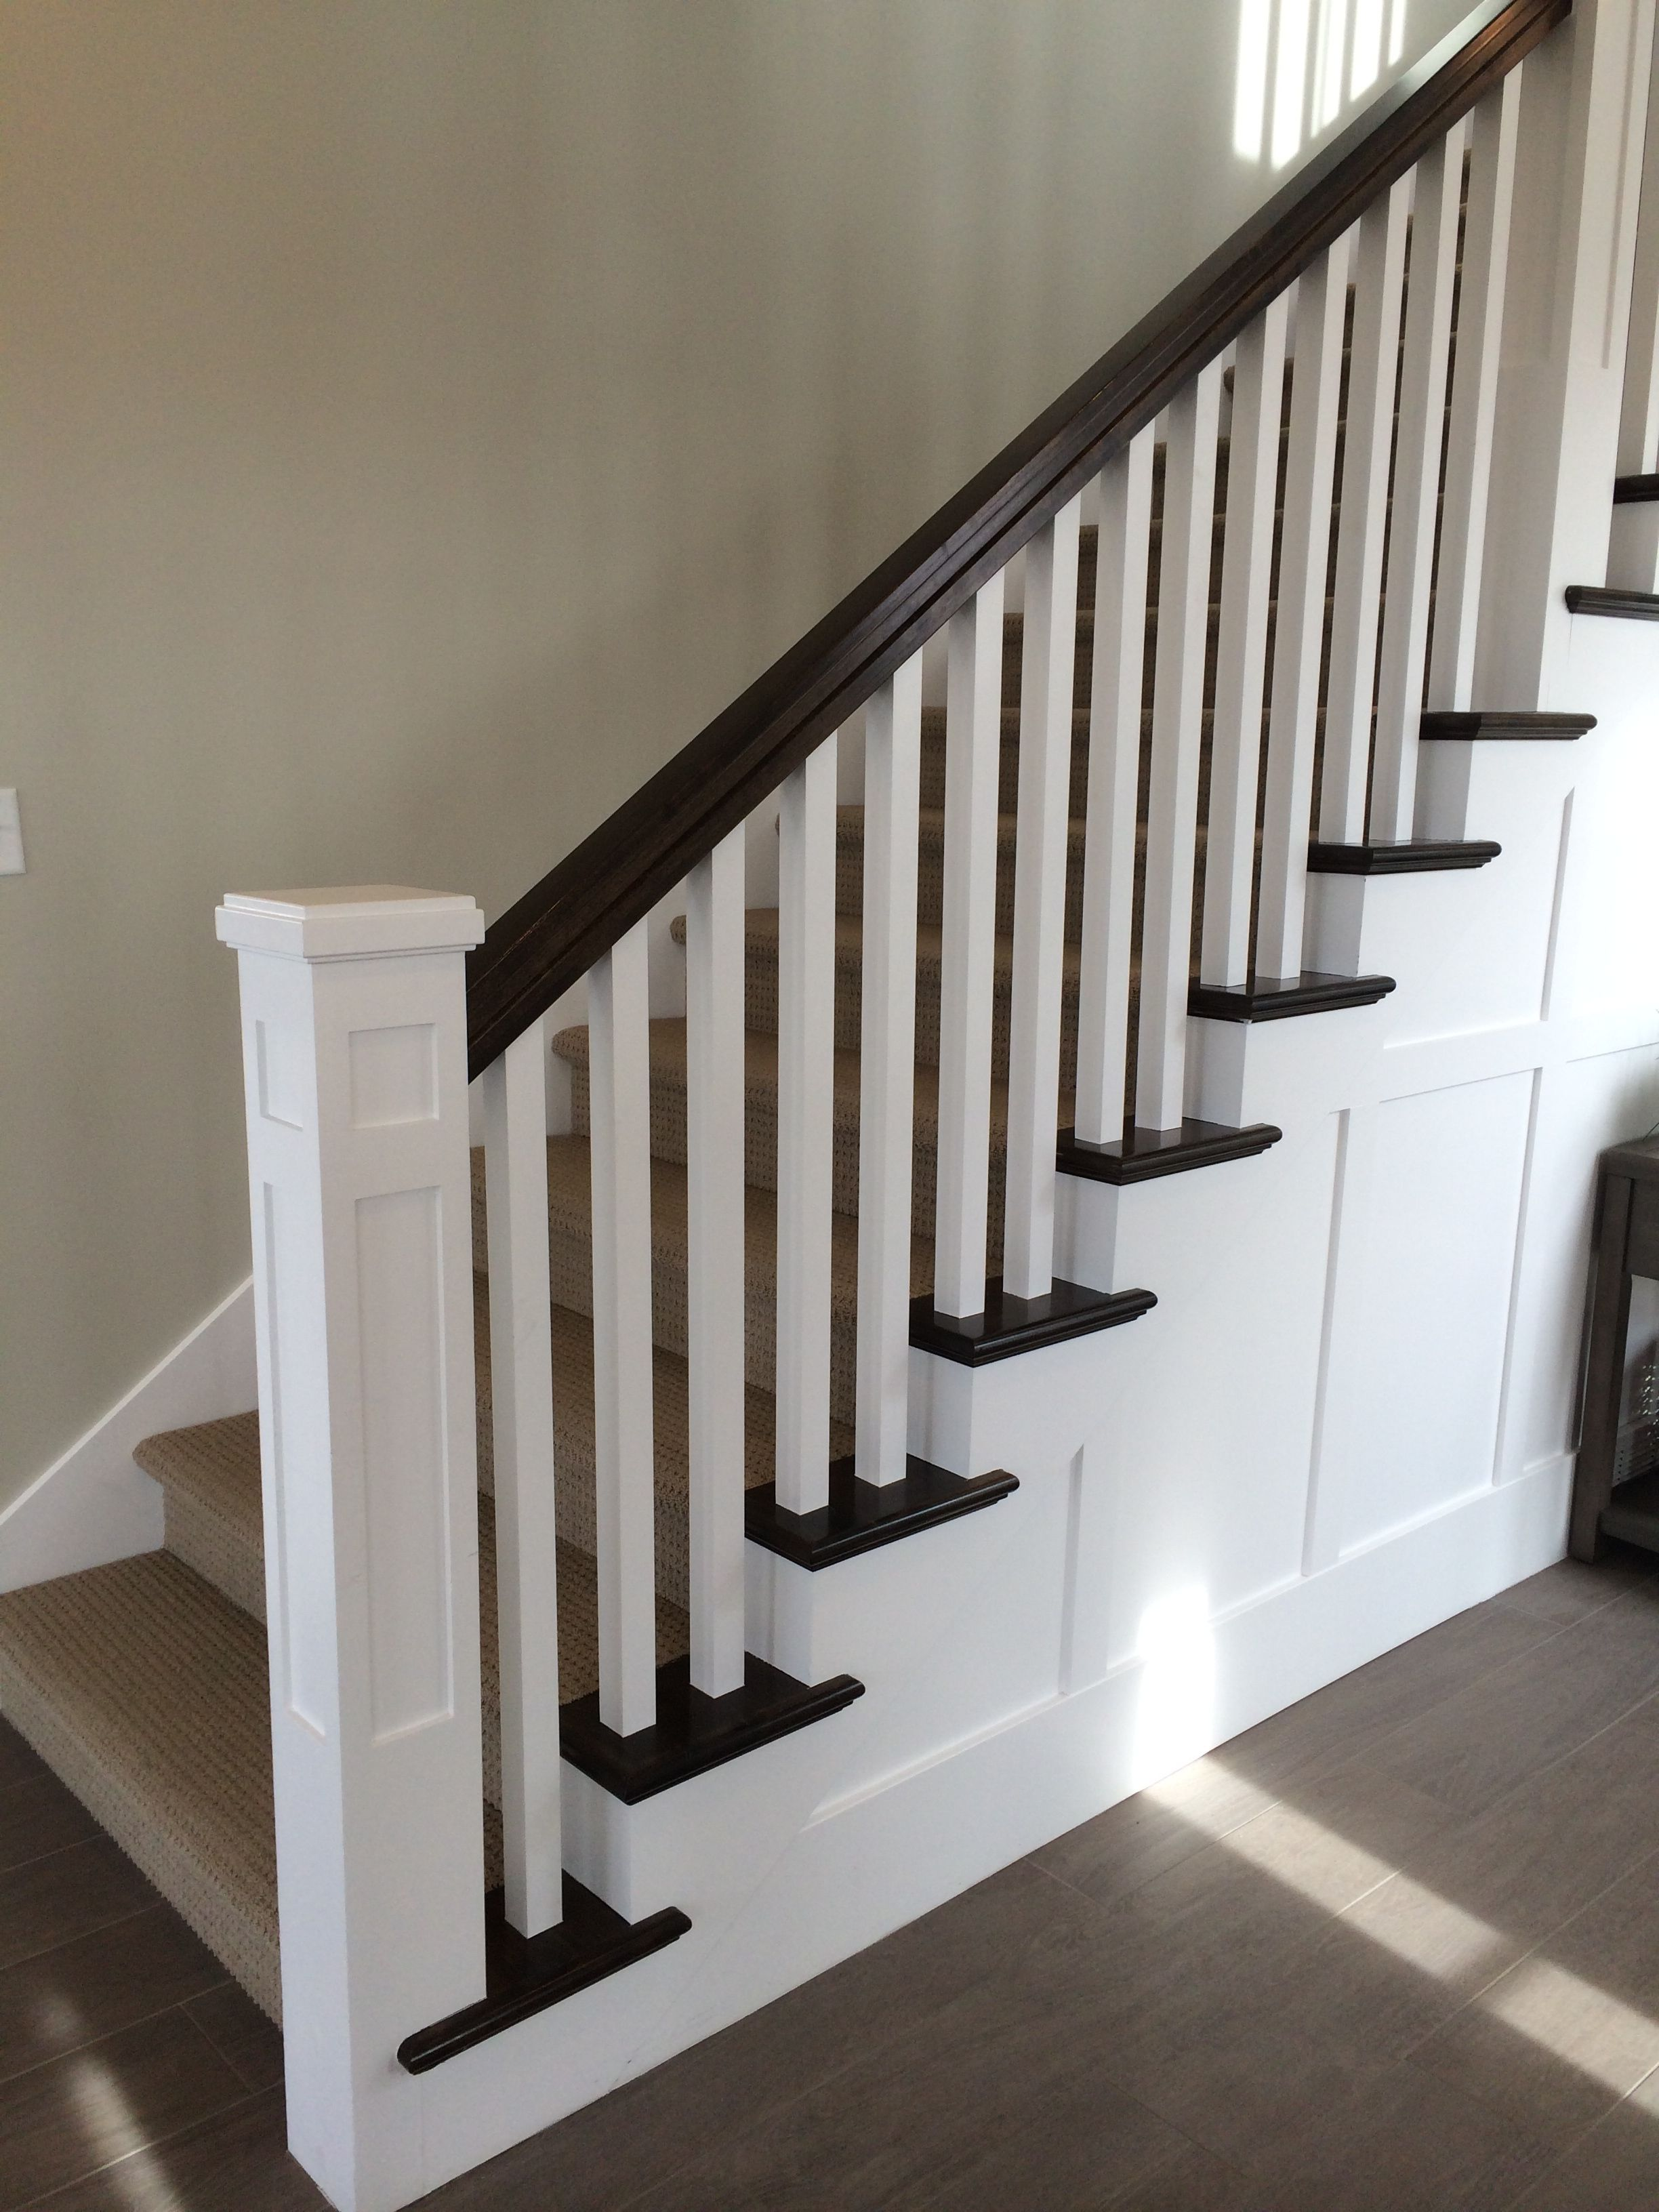 White newel post, charcoal stained handrail, white square